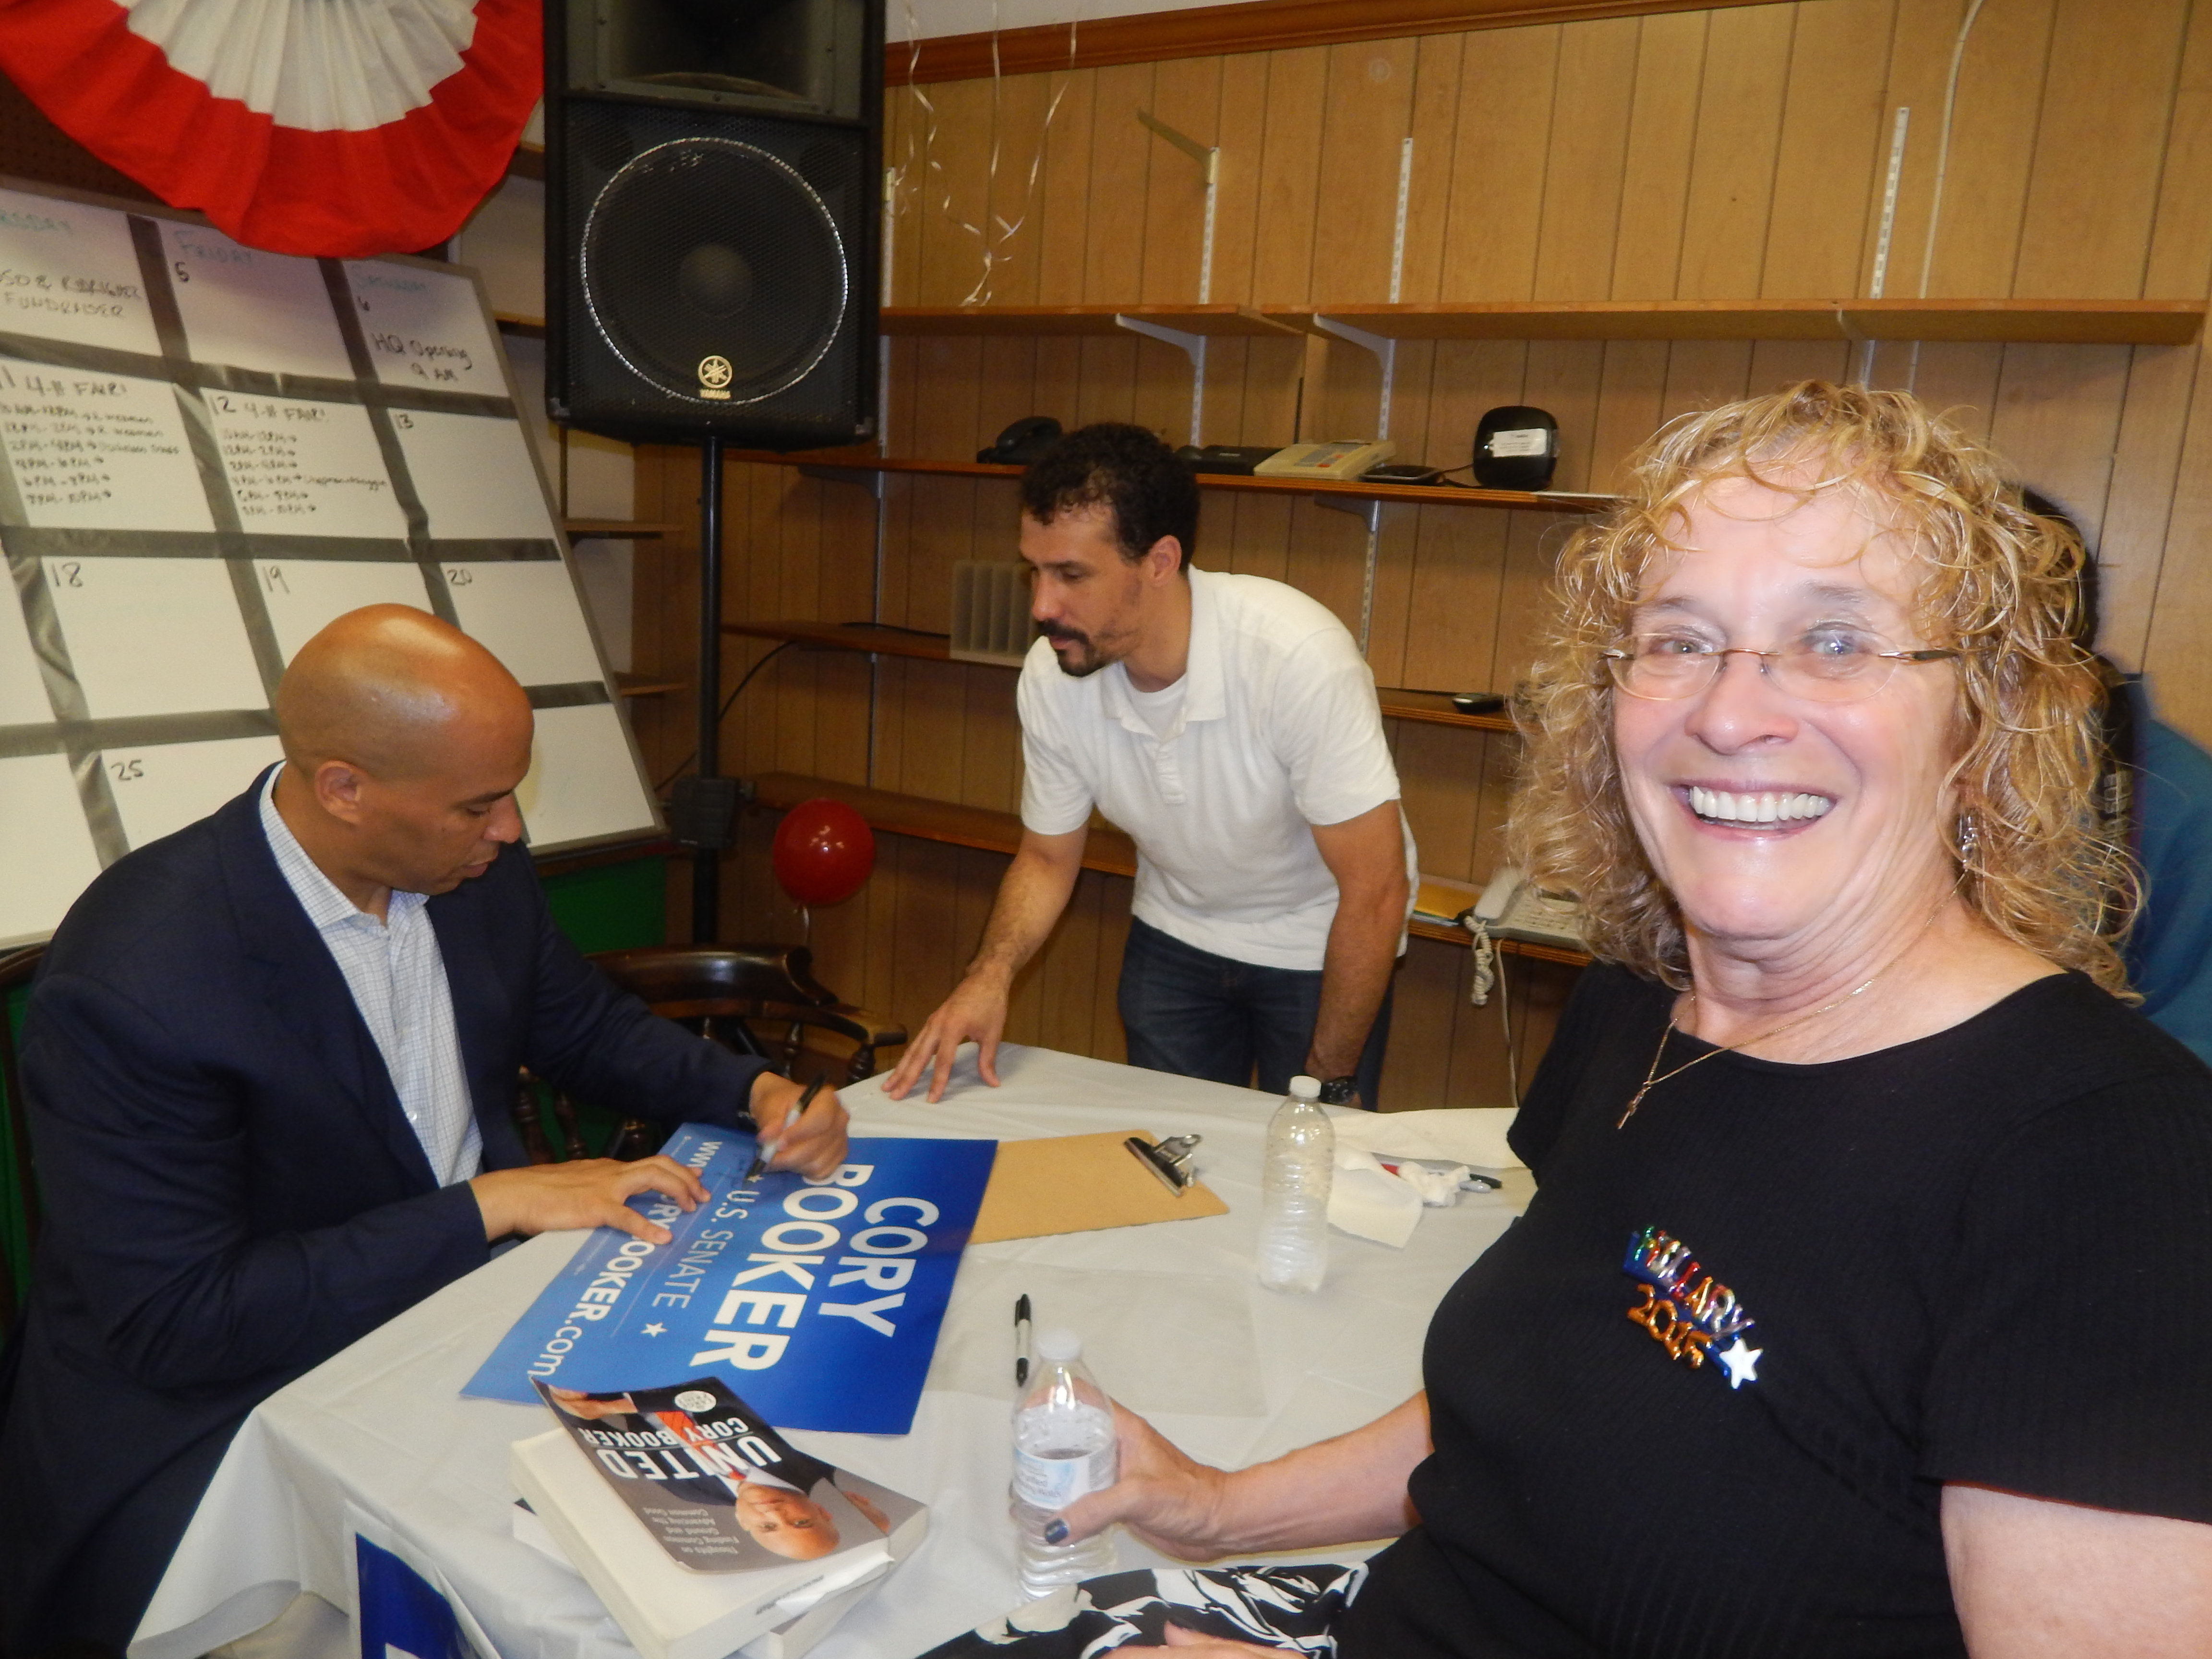 Senator Booker attended the Somerset Dems' HQ opening with Chair Peg Schaffer and Executive Director Jon Evans.